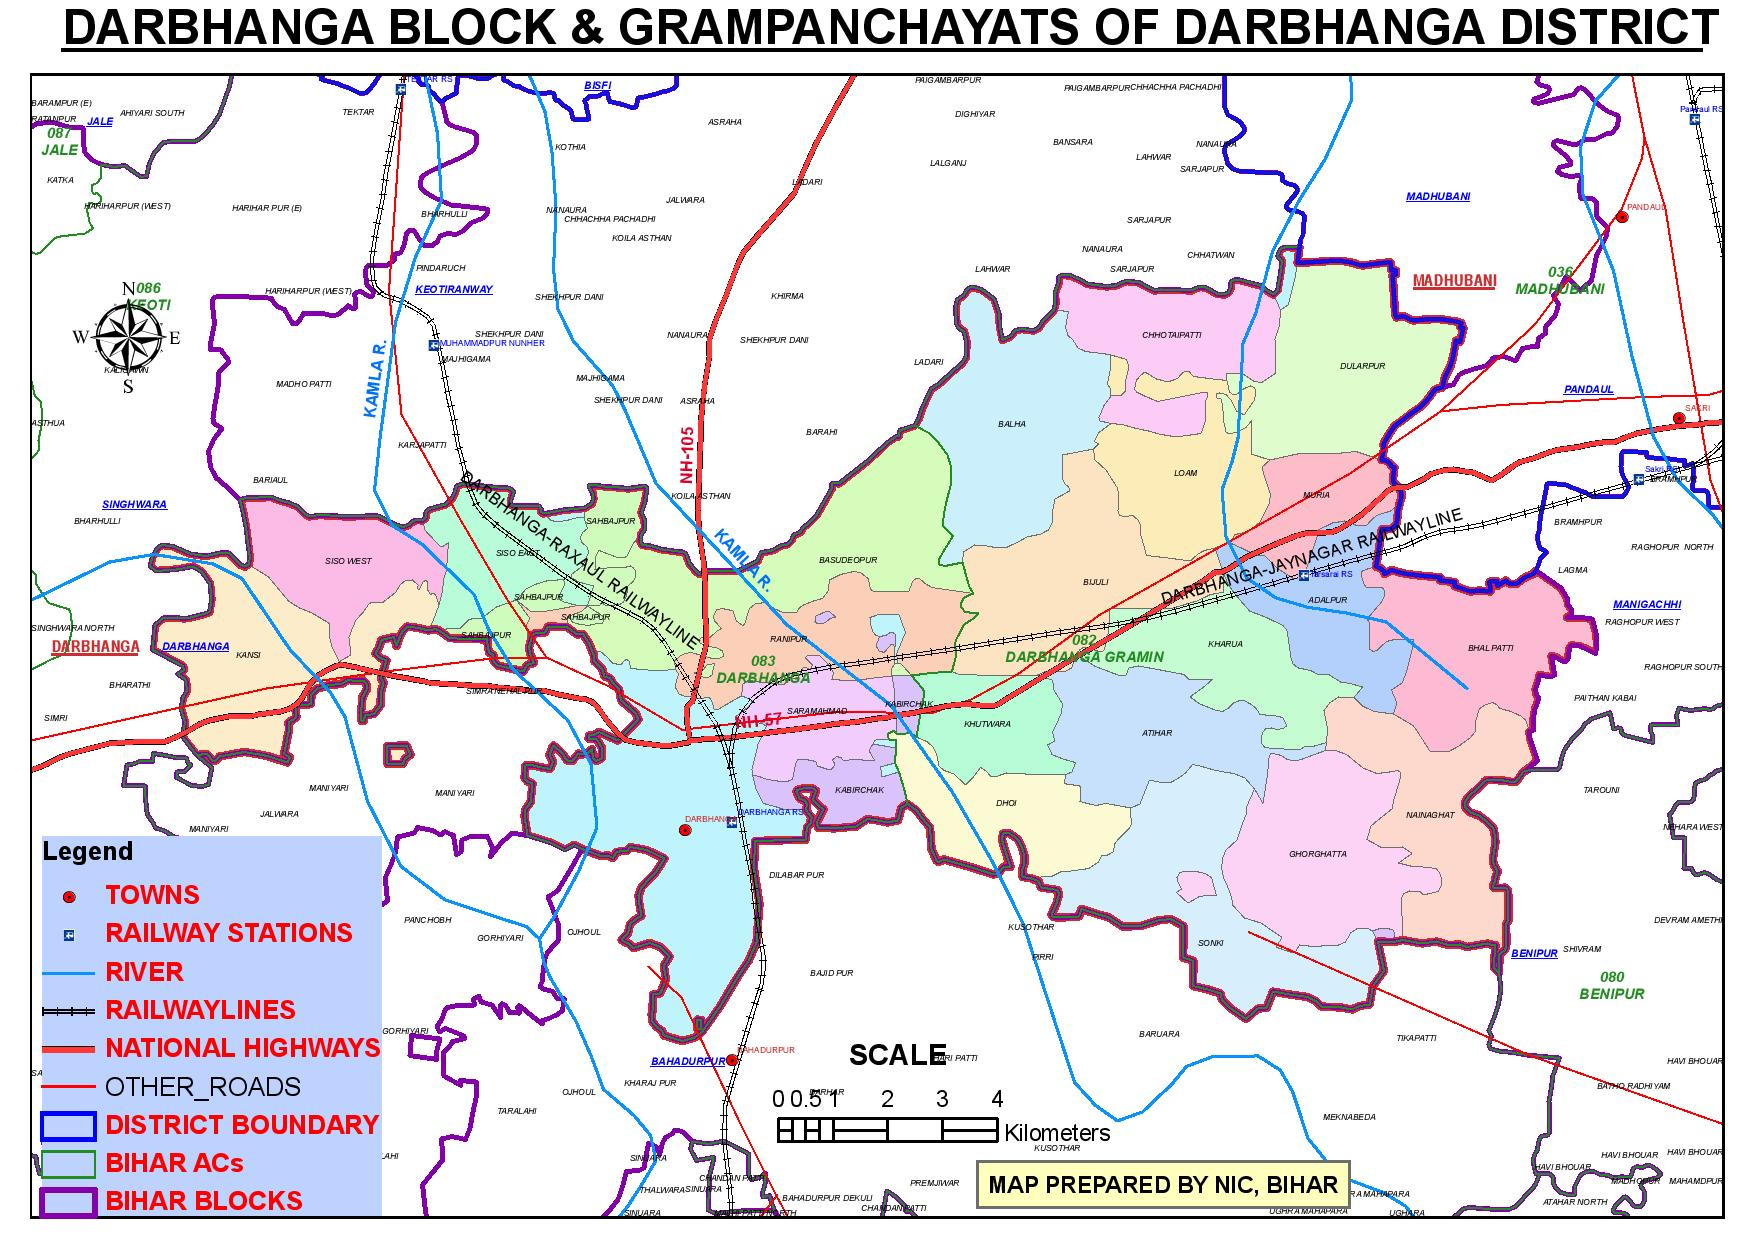 Map of District   Welcome to Darbhanga District   India District Map Of Bihar on map of uttar pradesh district, map of bharatpur district, map of shimoga district, map of aurangabad district, map of pune district, map of lalitpur district, map of chhattisgarh district, map of kolhapur district, map of kottayam district, map of rajasthan district, map of guntur district, map of jamnagar district, map of darjeeling district, map of uttarakhand district, map of jehanabad district, map of thrissur district, map of thane district, map of bhojpur district, map of manipur district, map of ranchi district,